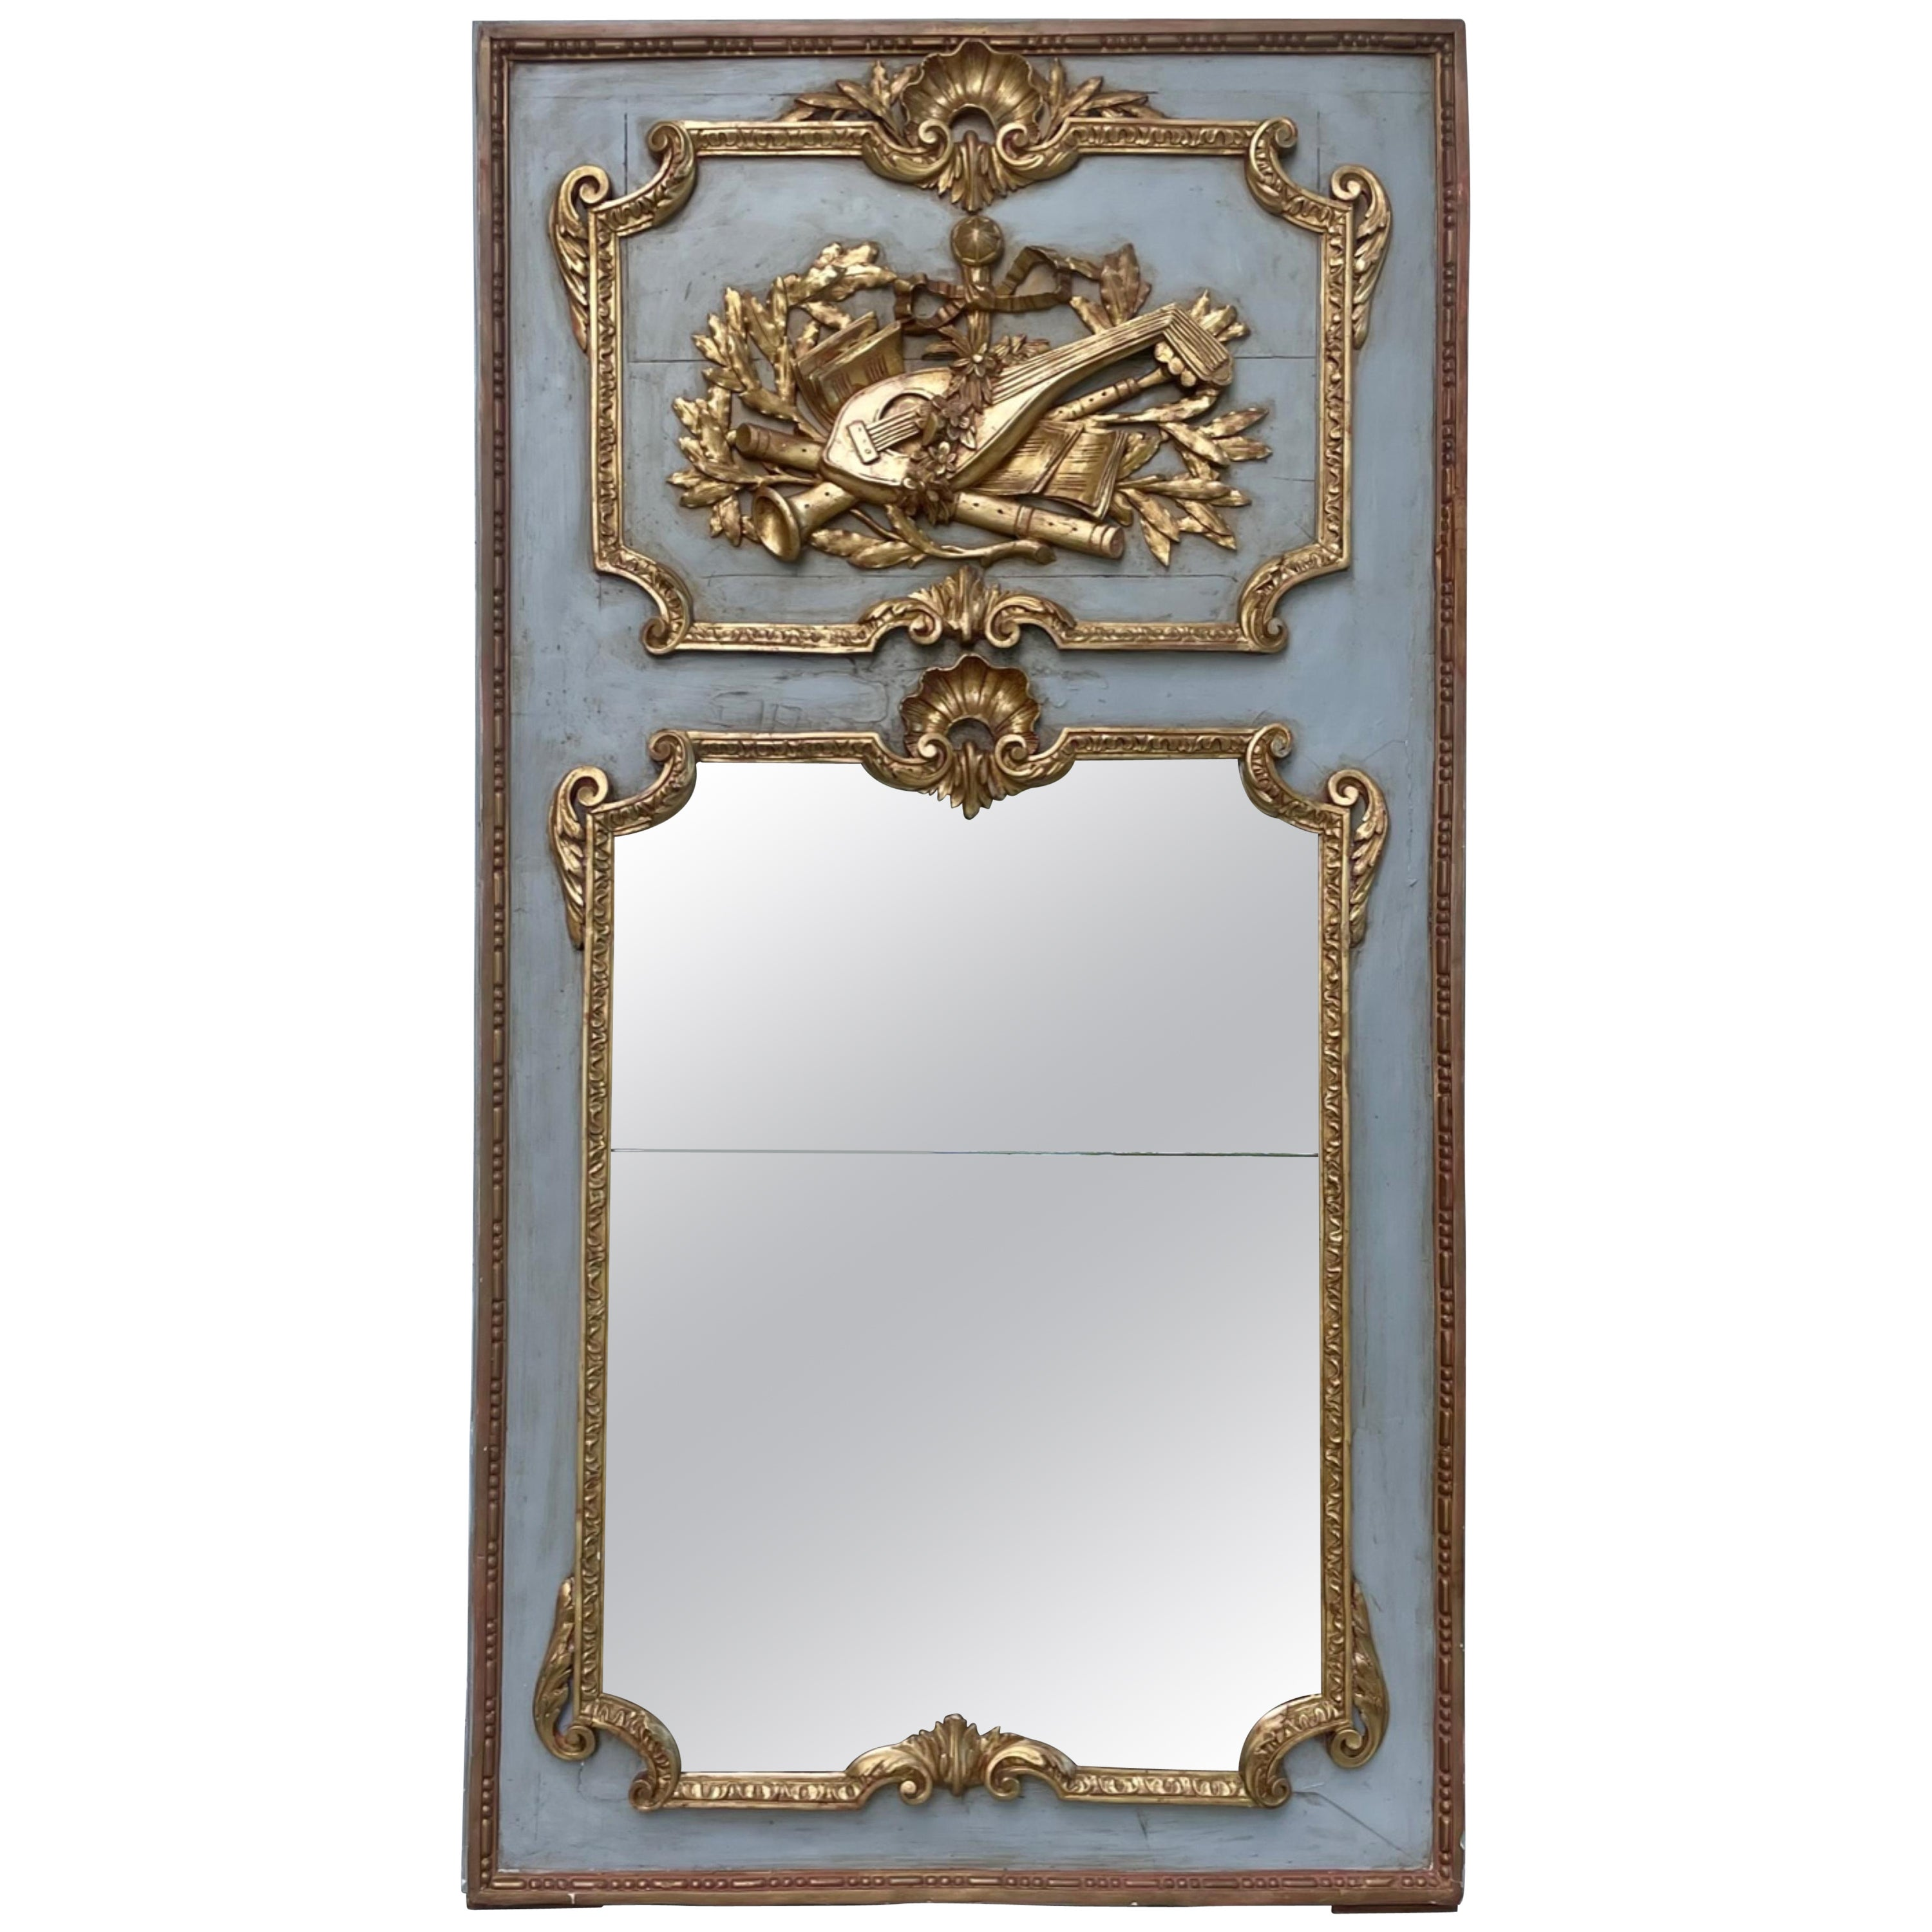 19th Century French Louis XV Stucco Carved and Gilded Trumeau Mirror